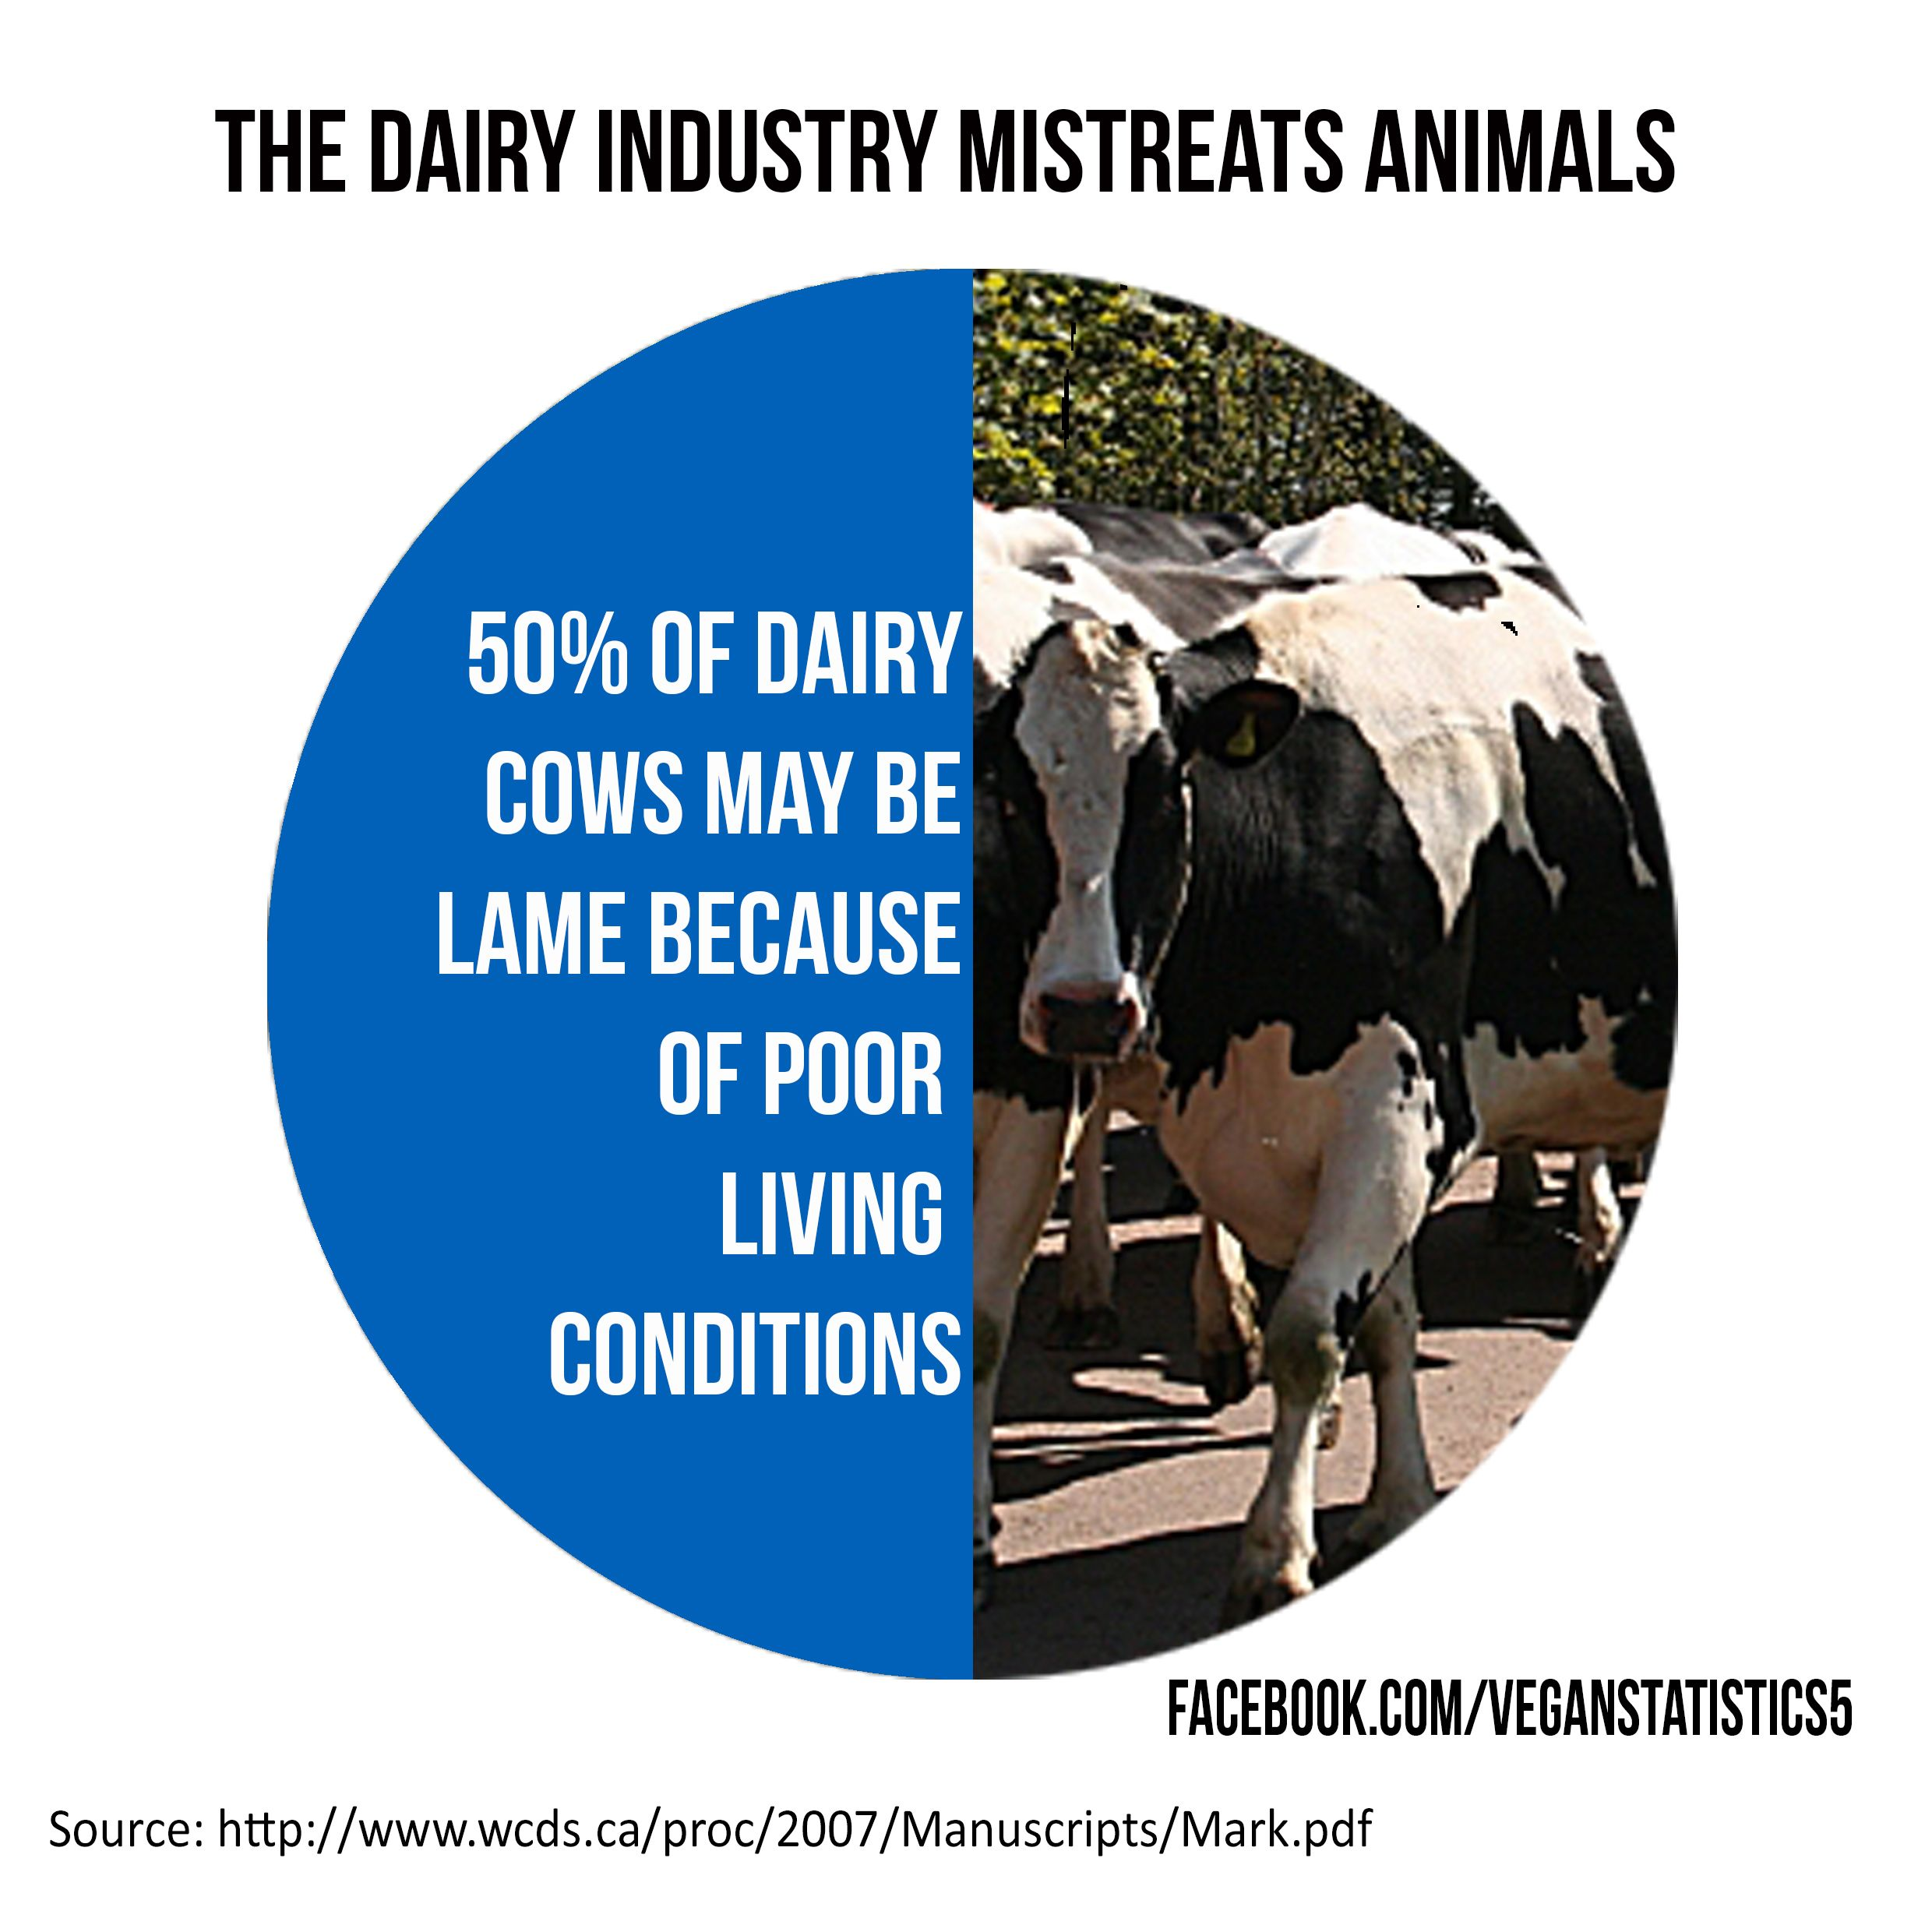 vegan vegetarian milk dairy cows cruelty animal rights vegan vegetarian milk dairy cows cruelty animal rights veganism